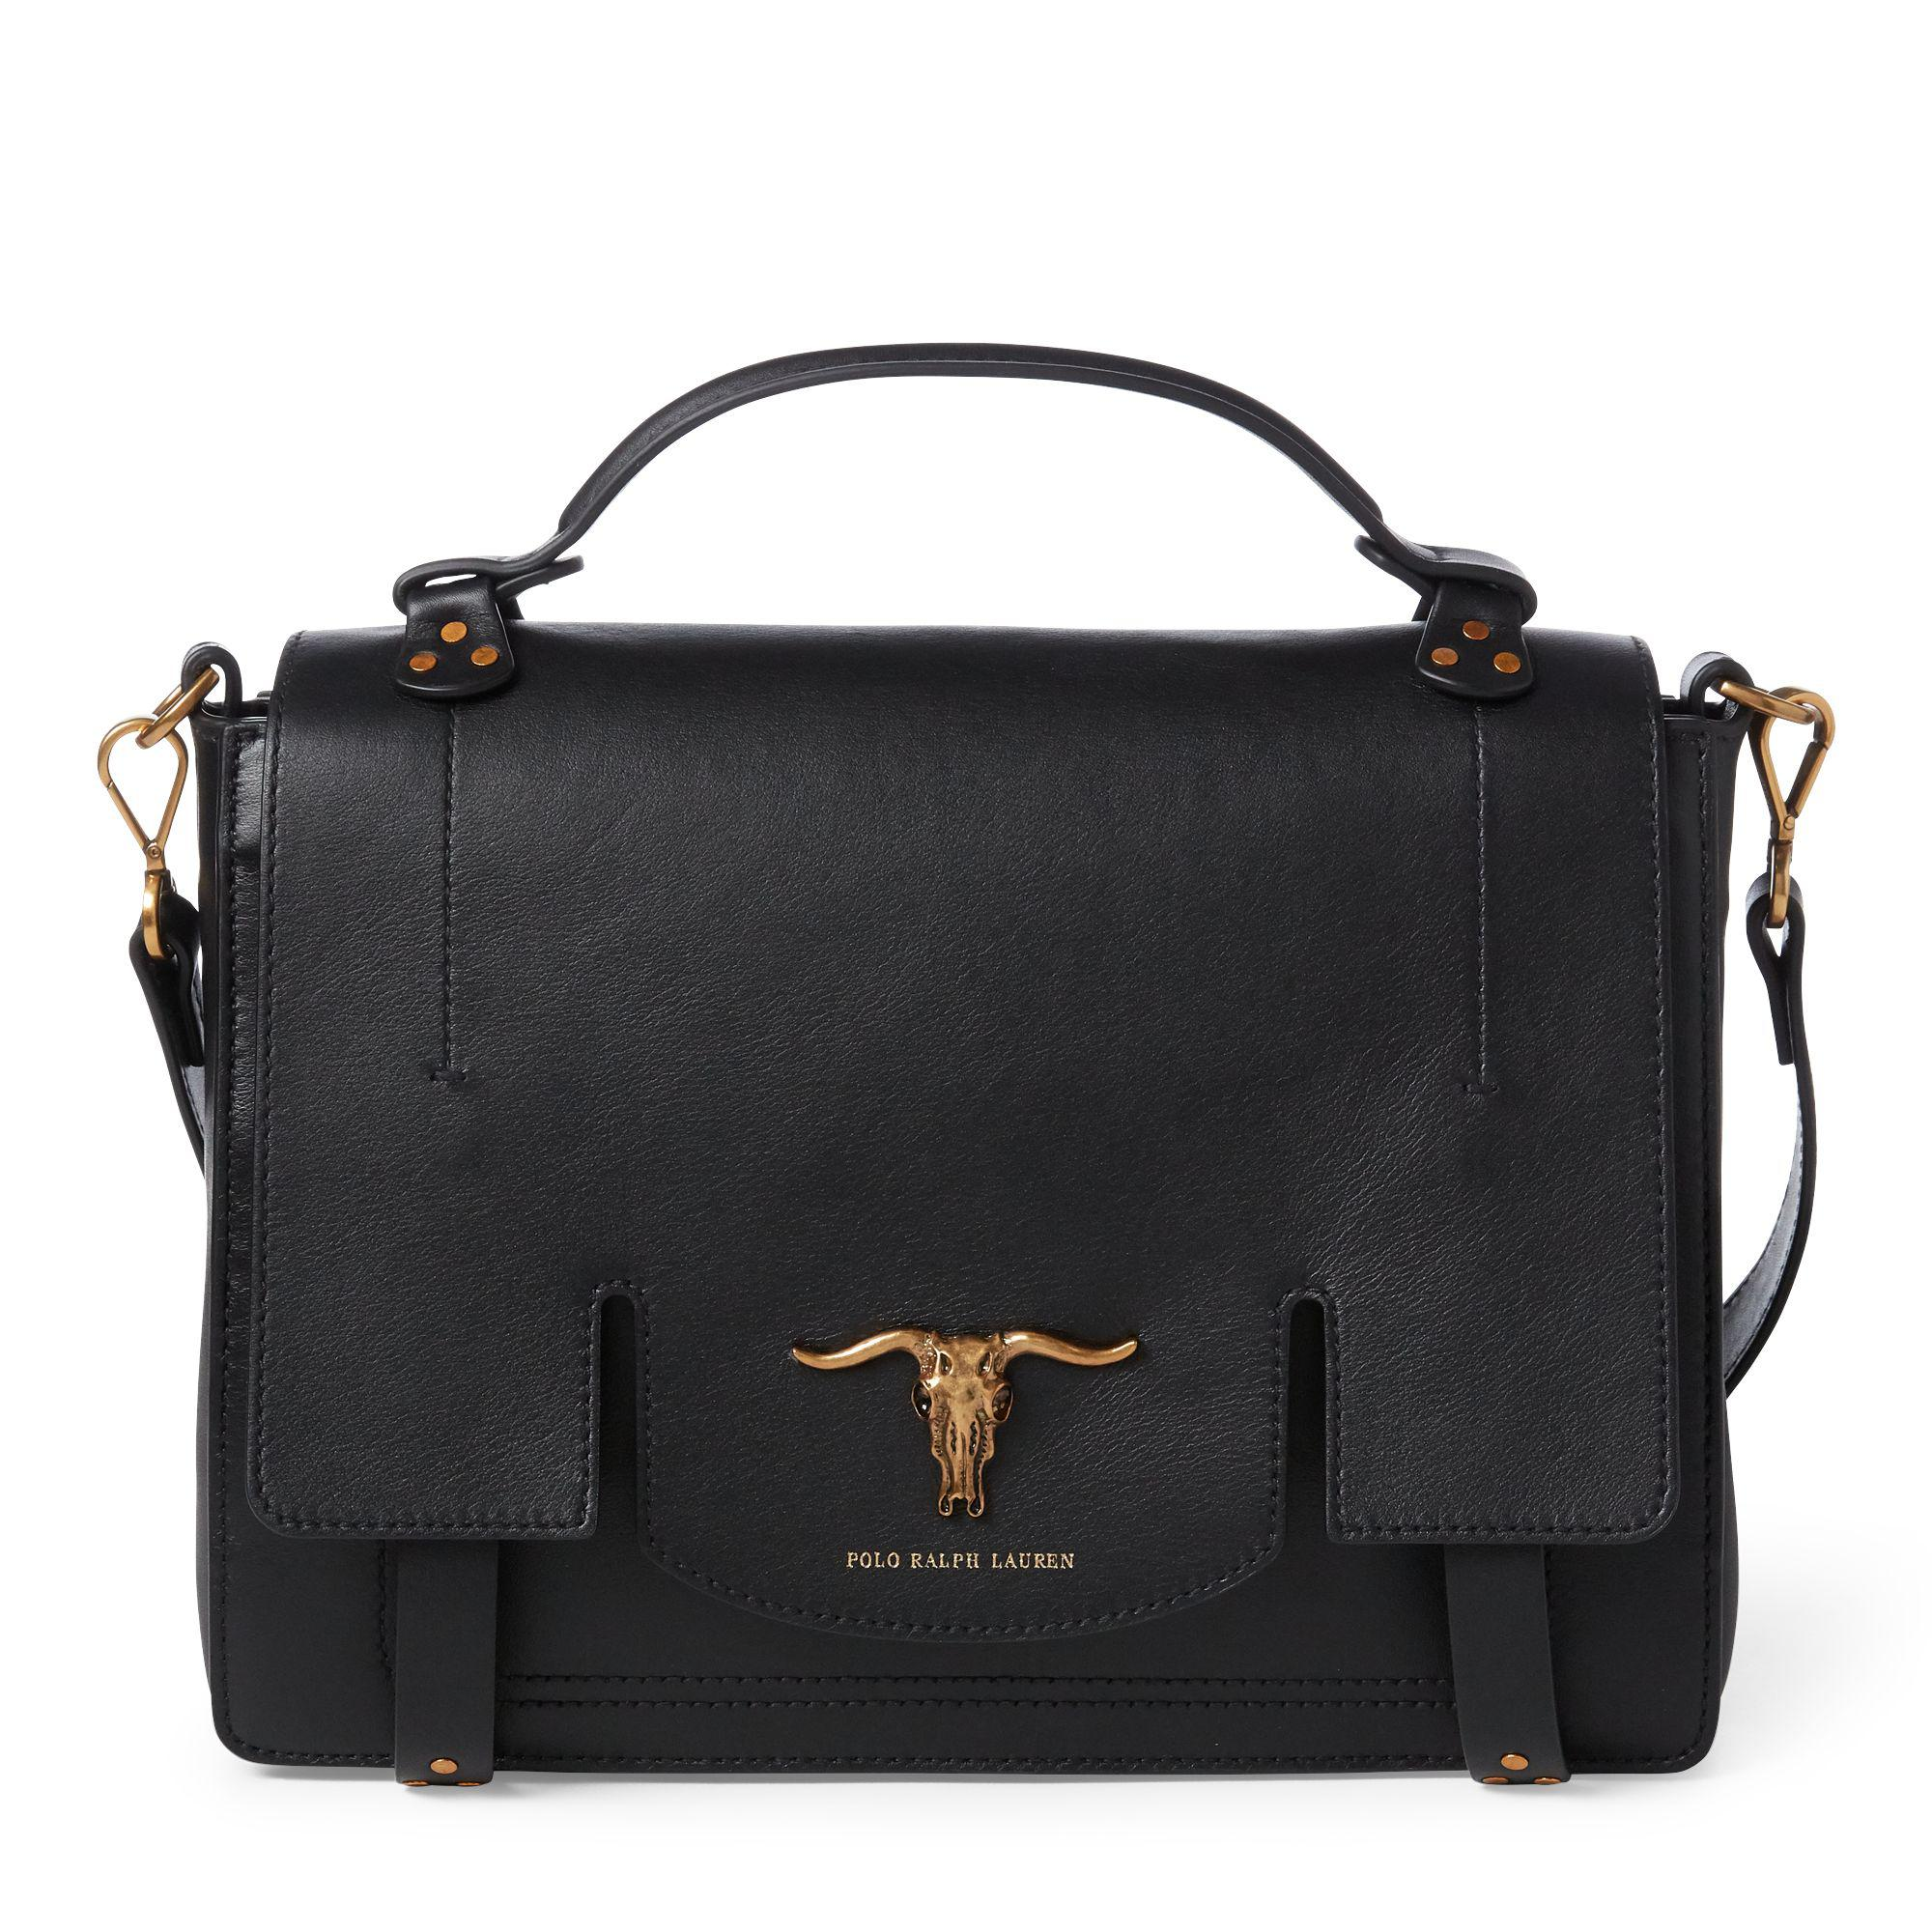 6b0512d138 Polo Ralph Lauren Leather Schooly Bag in Black - Lyst